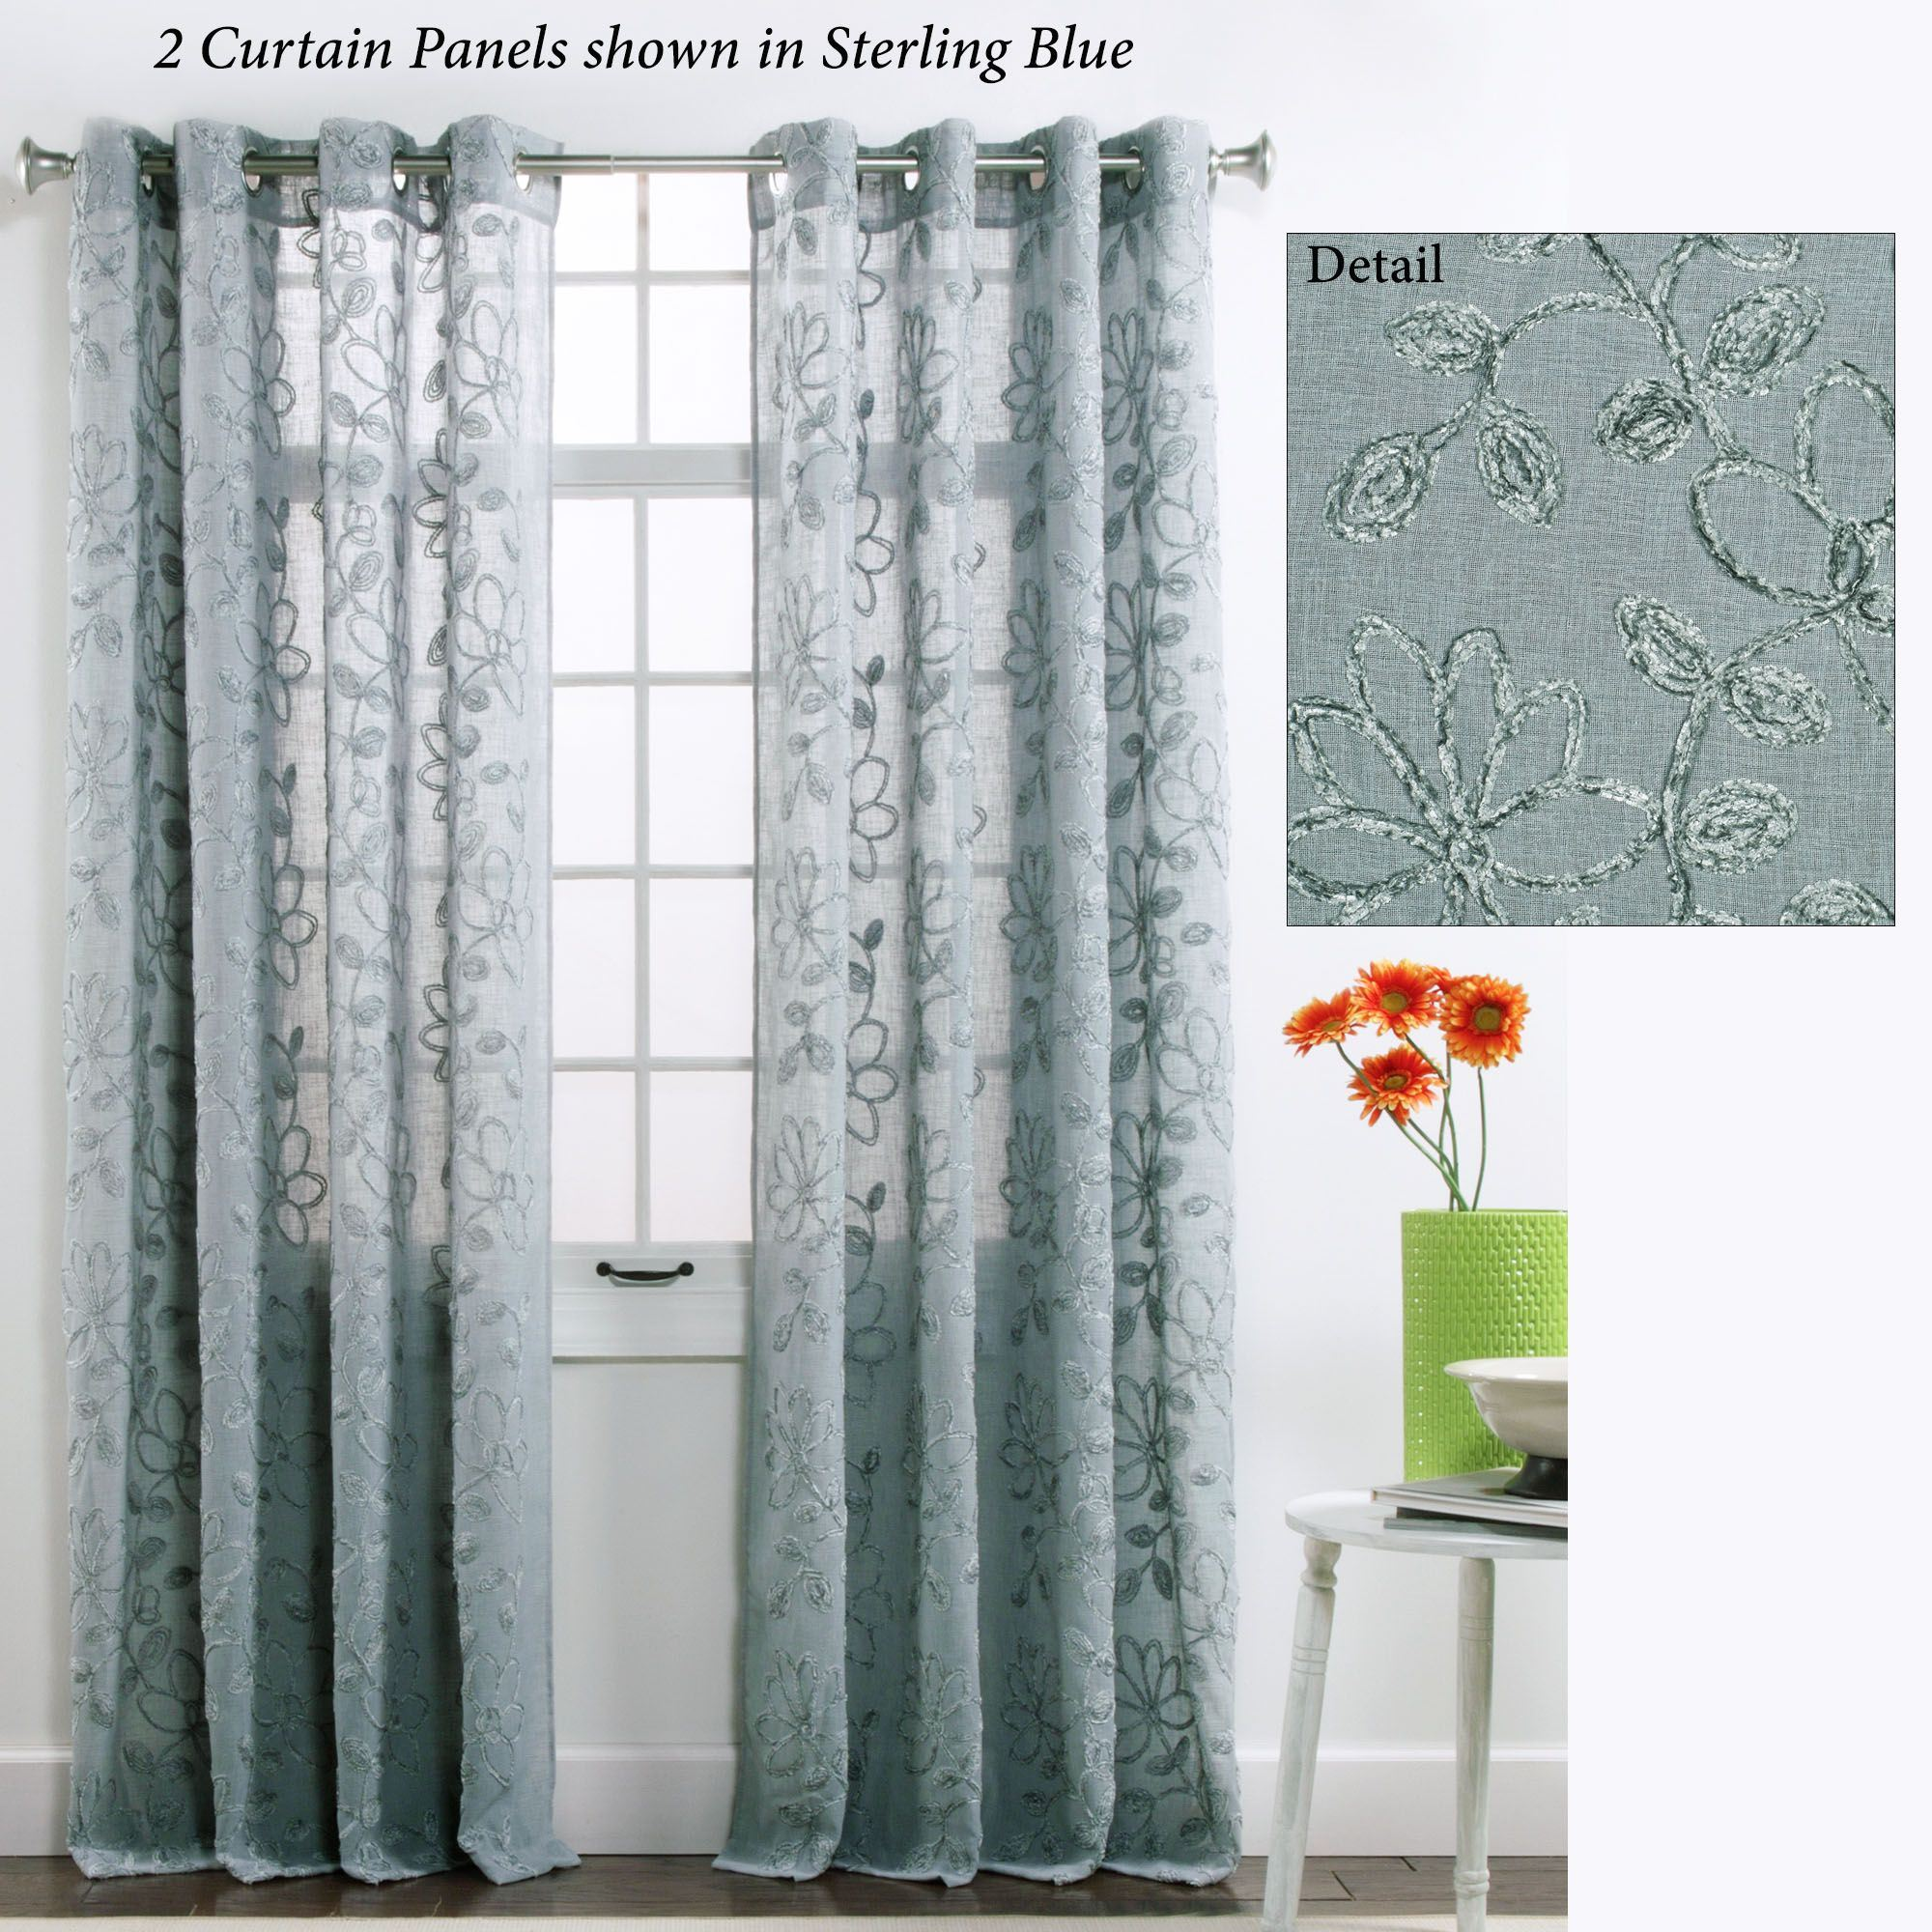 large curtains of eyelet size teal window drapes dark living room sheer velvet grey and